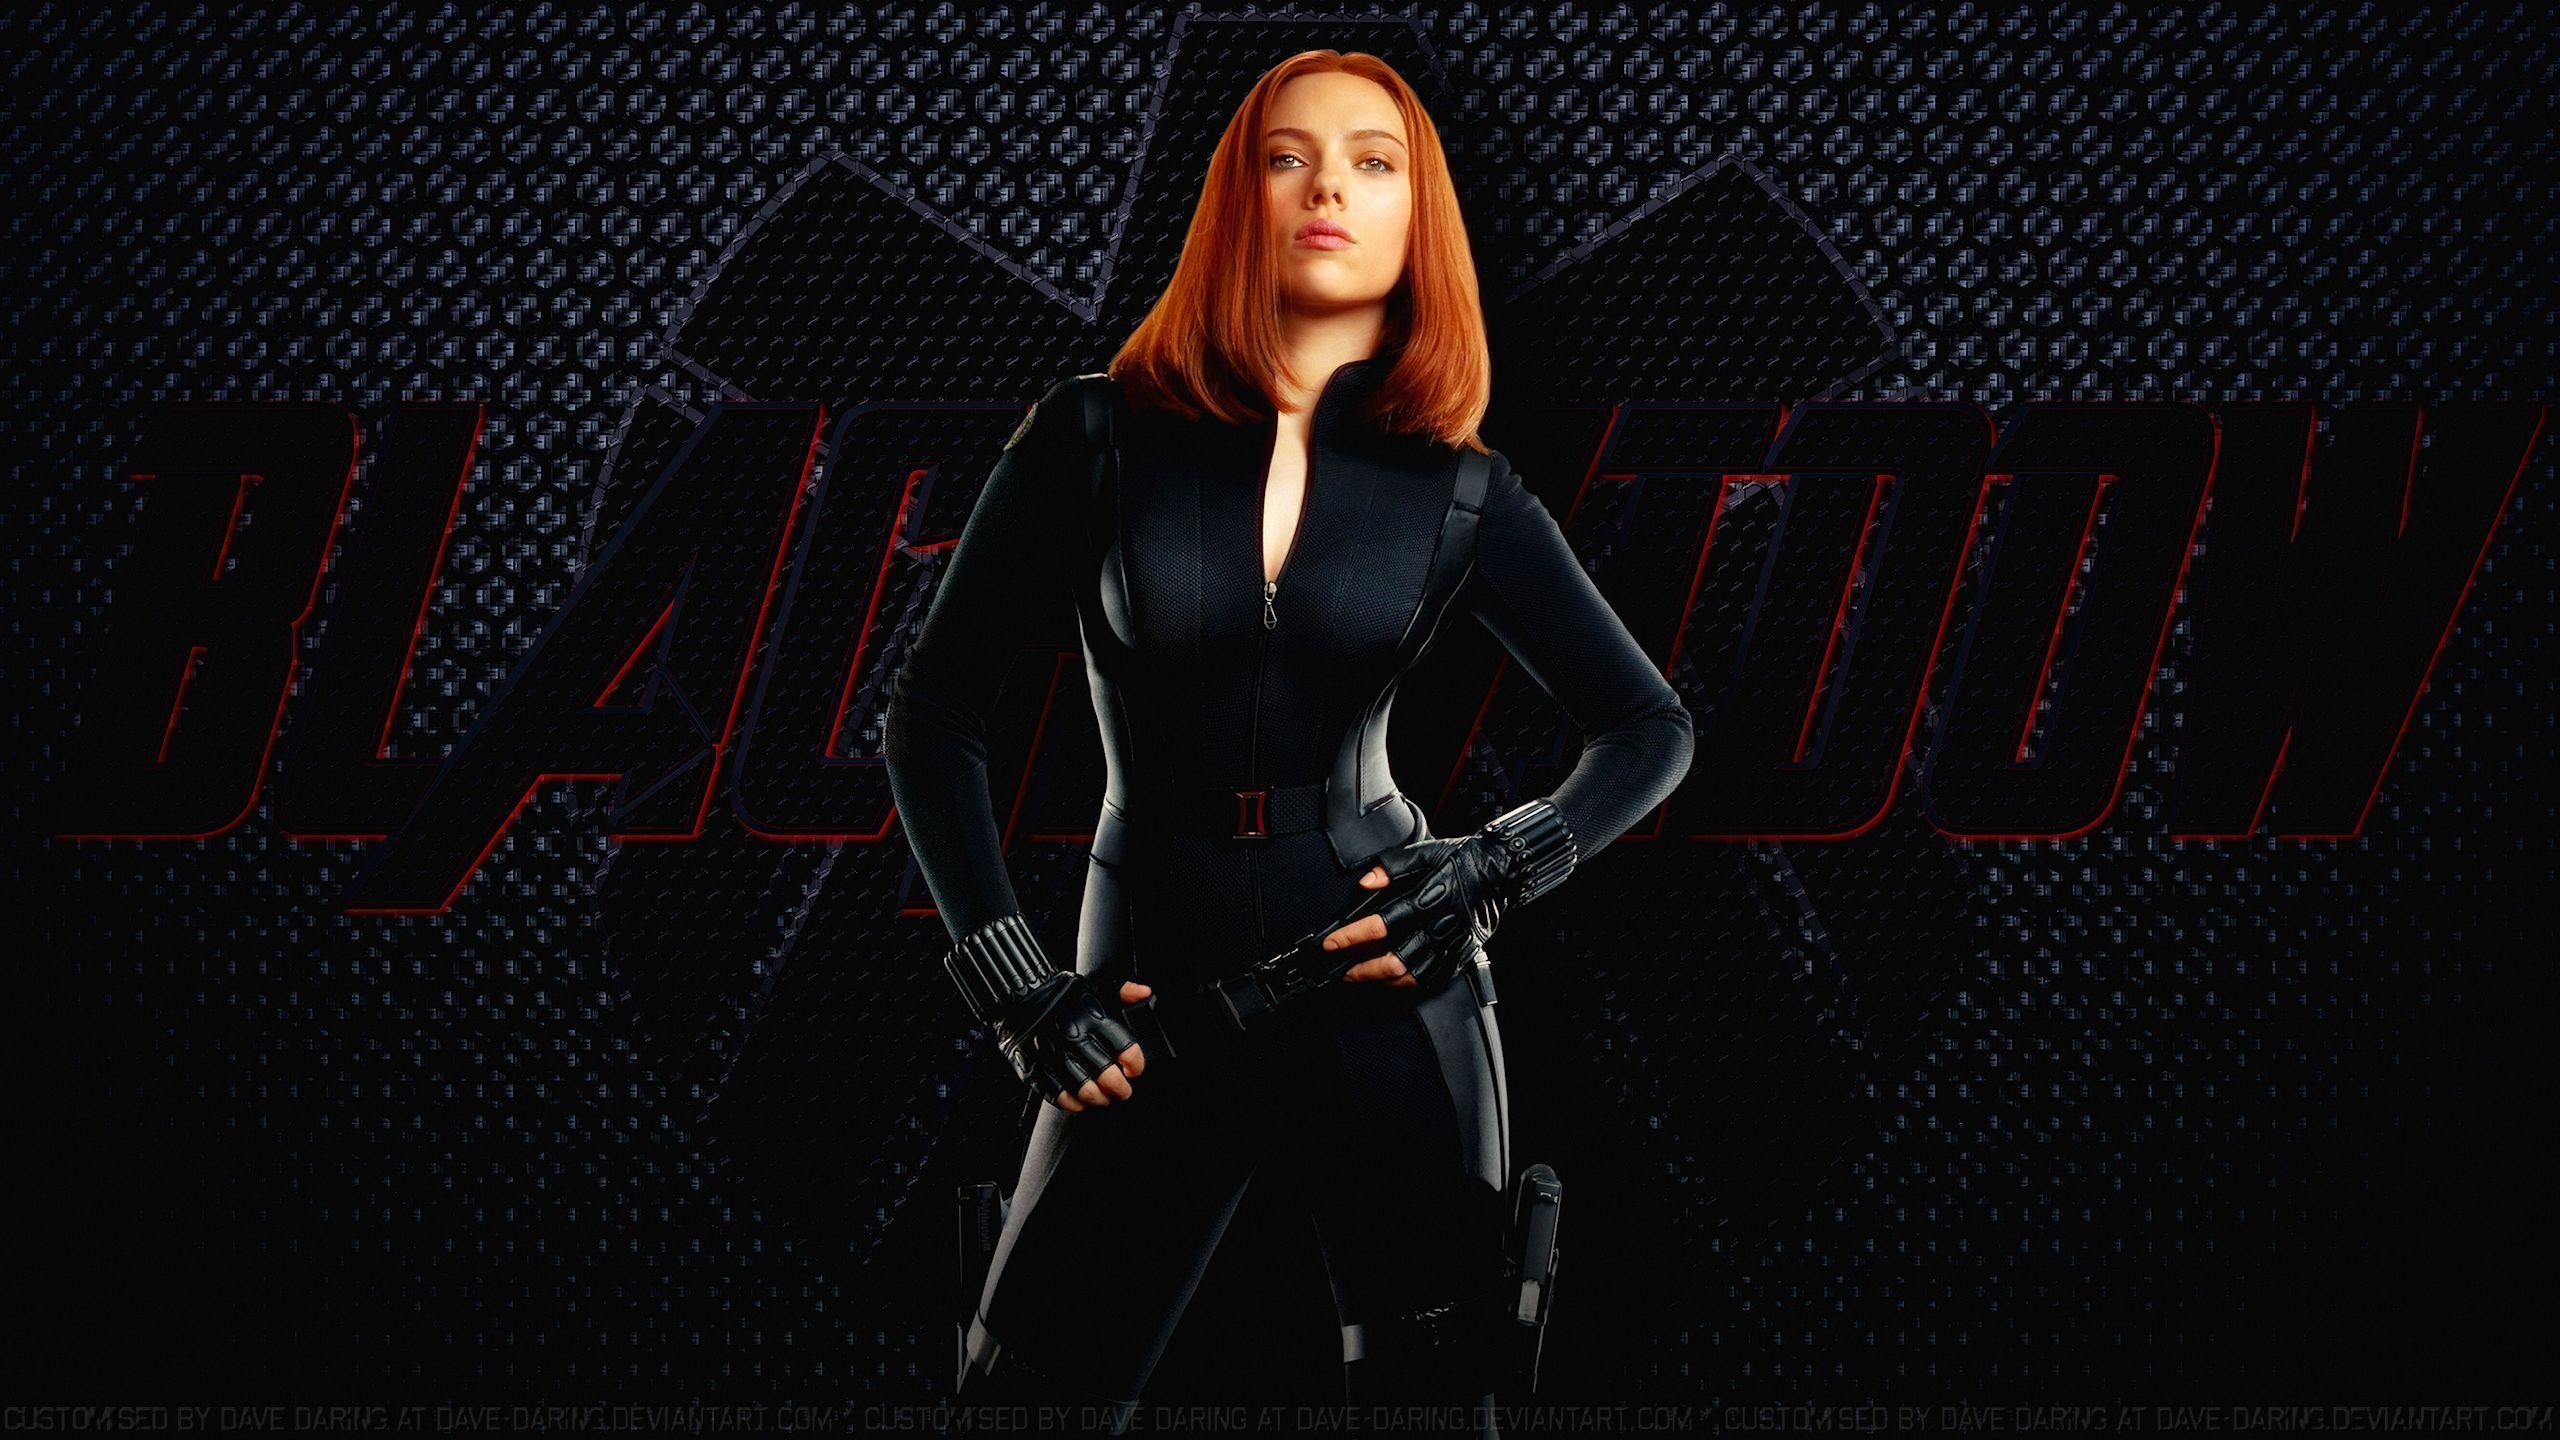 Scarlett johansson black widow wallpaper - photo#7